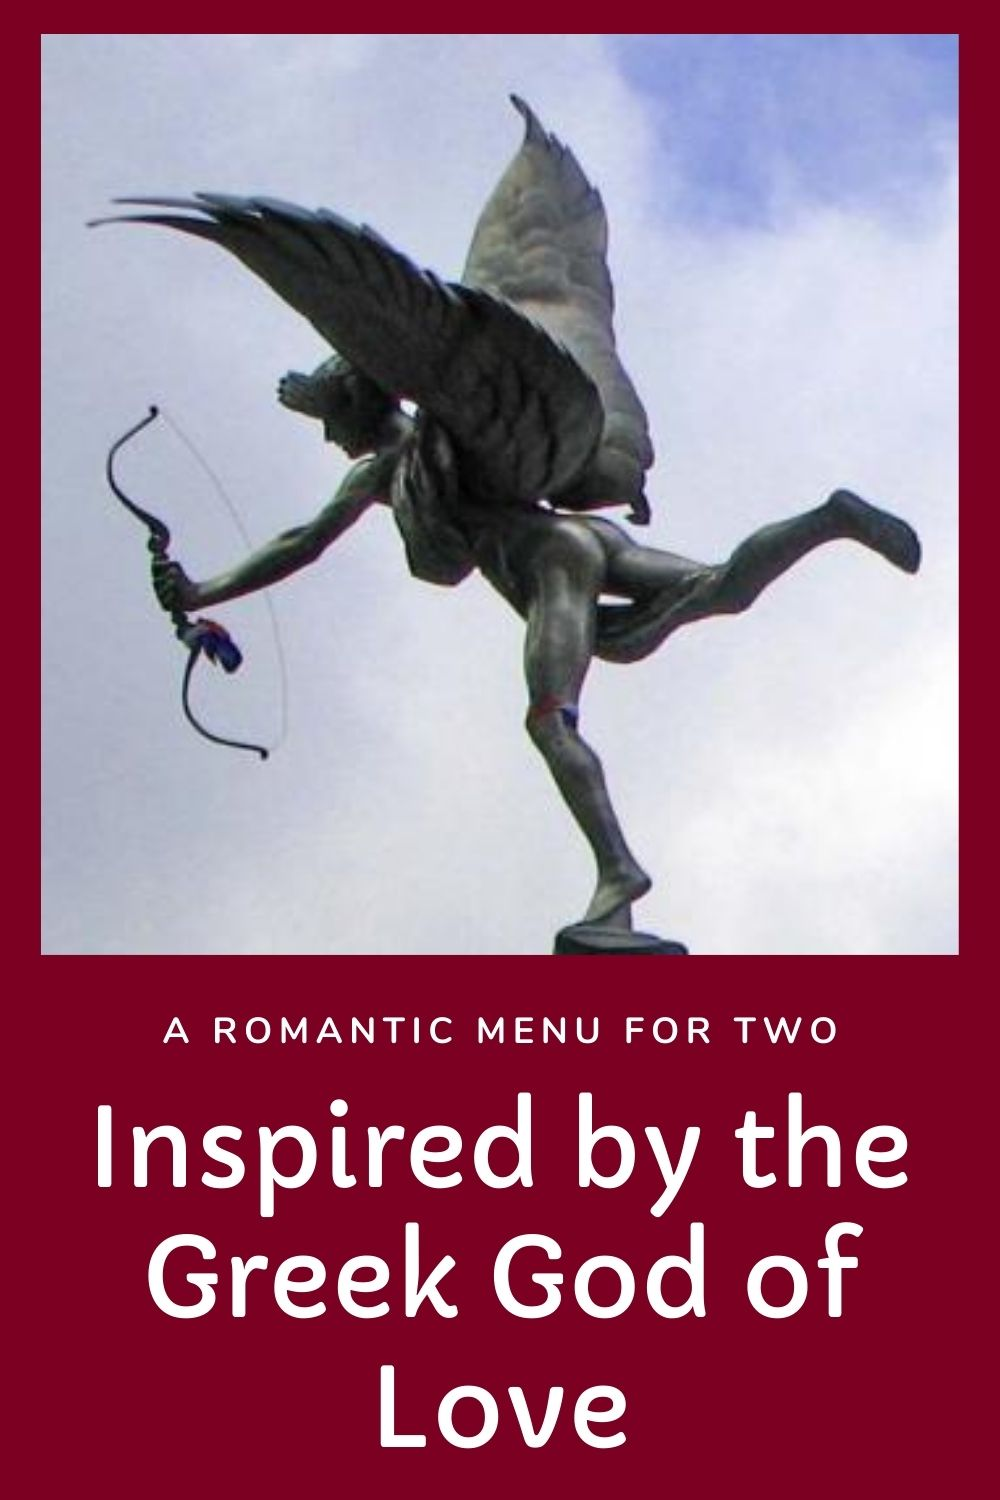 A romantic greek menu for two graphic